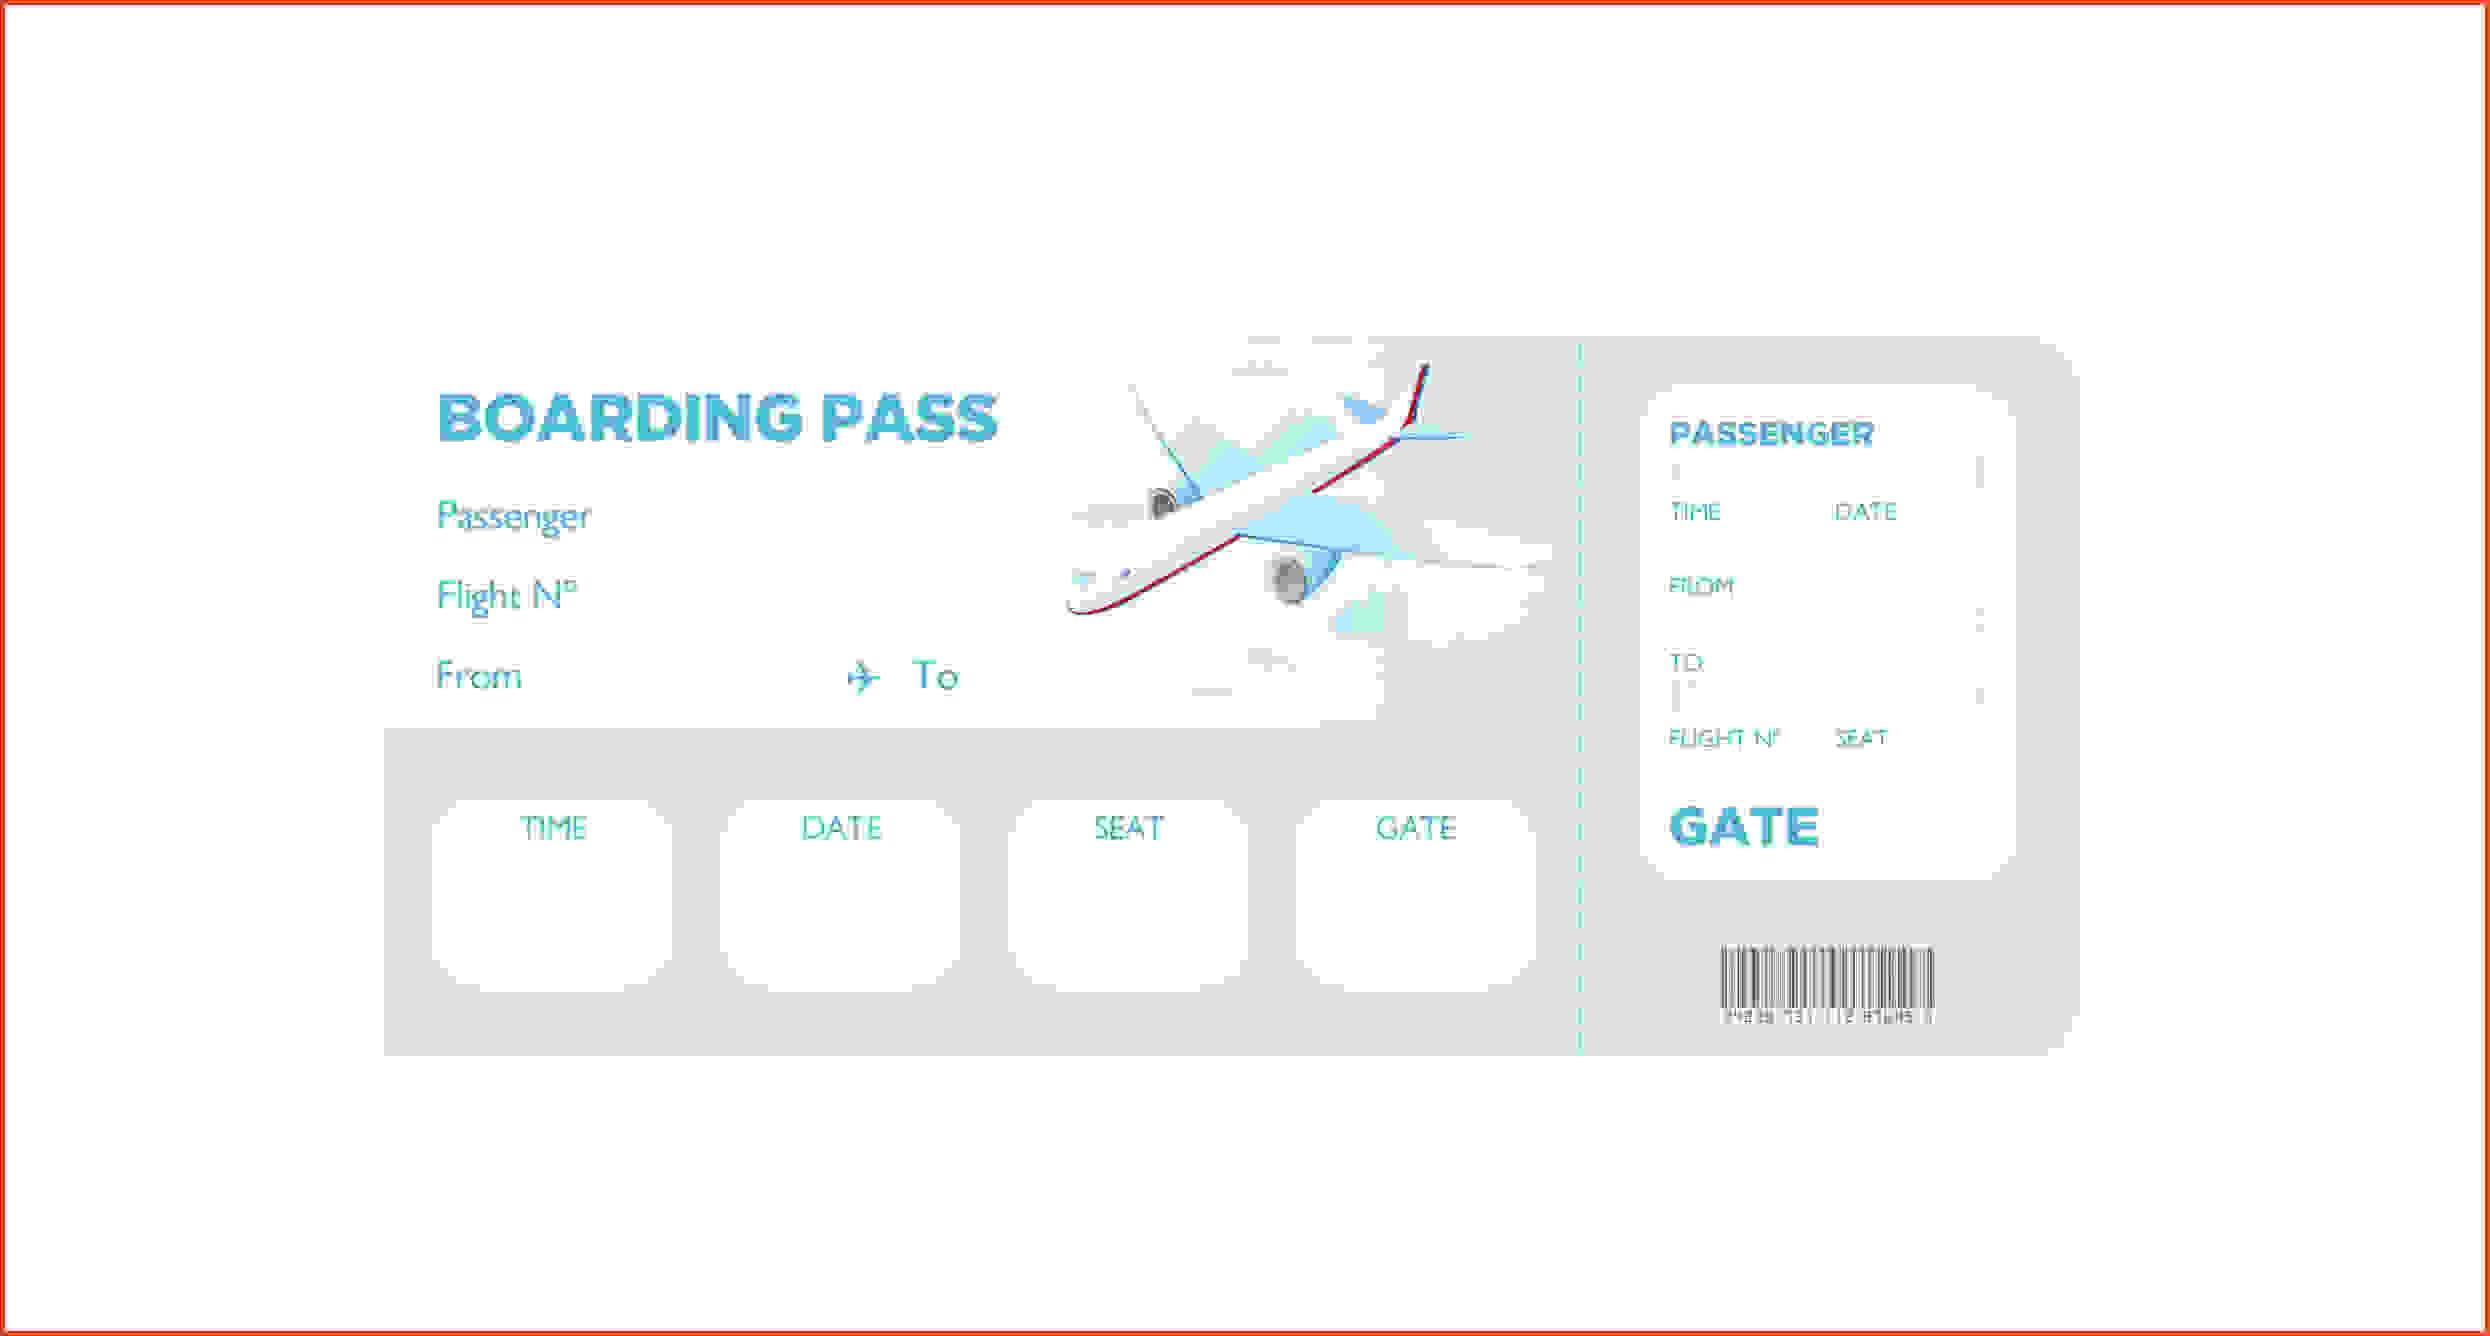 Boarding Pass Template Boarding Pass Template Free 16 Real Fake Boarding Pass Templates By Gtsak Info Boarding Pass Template Surprise Vacation Templates